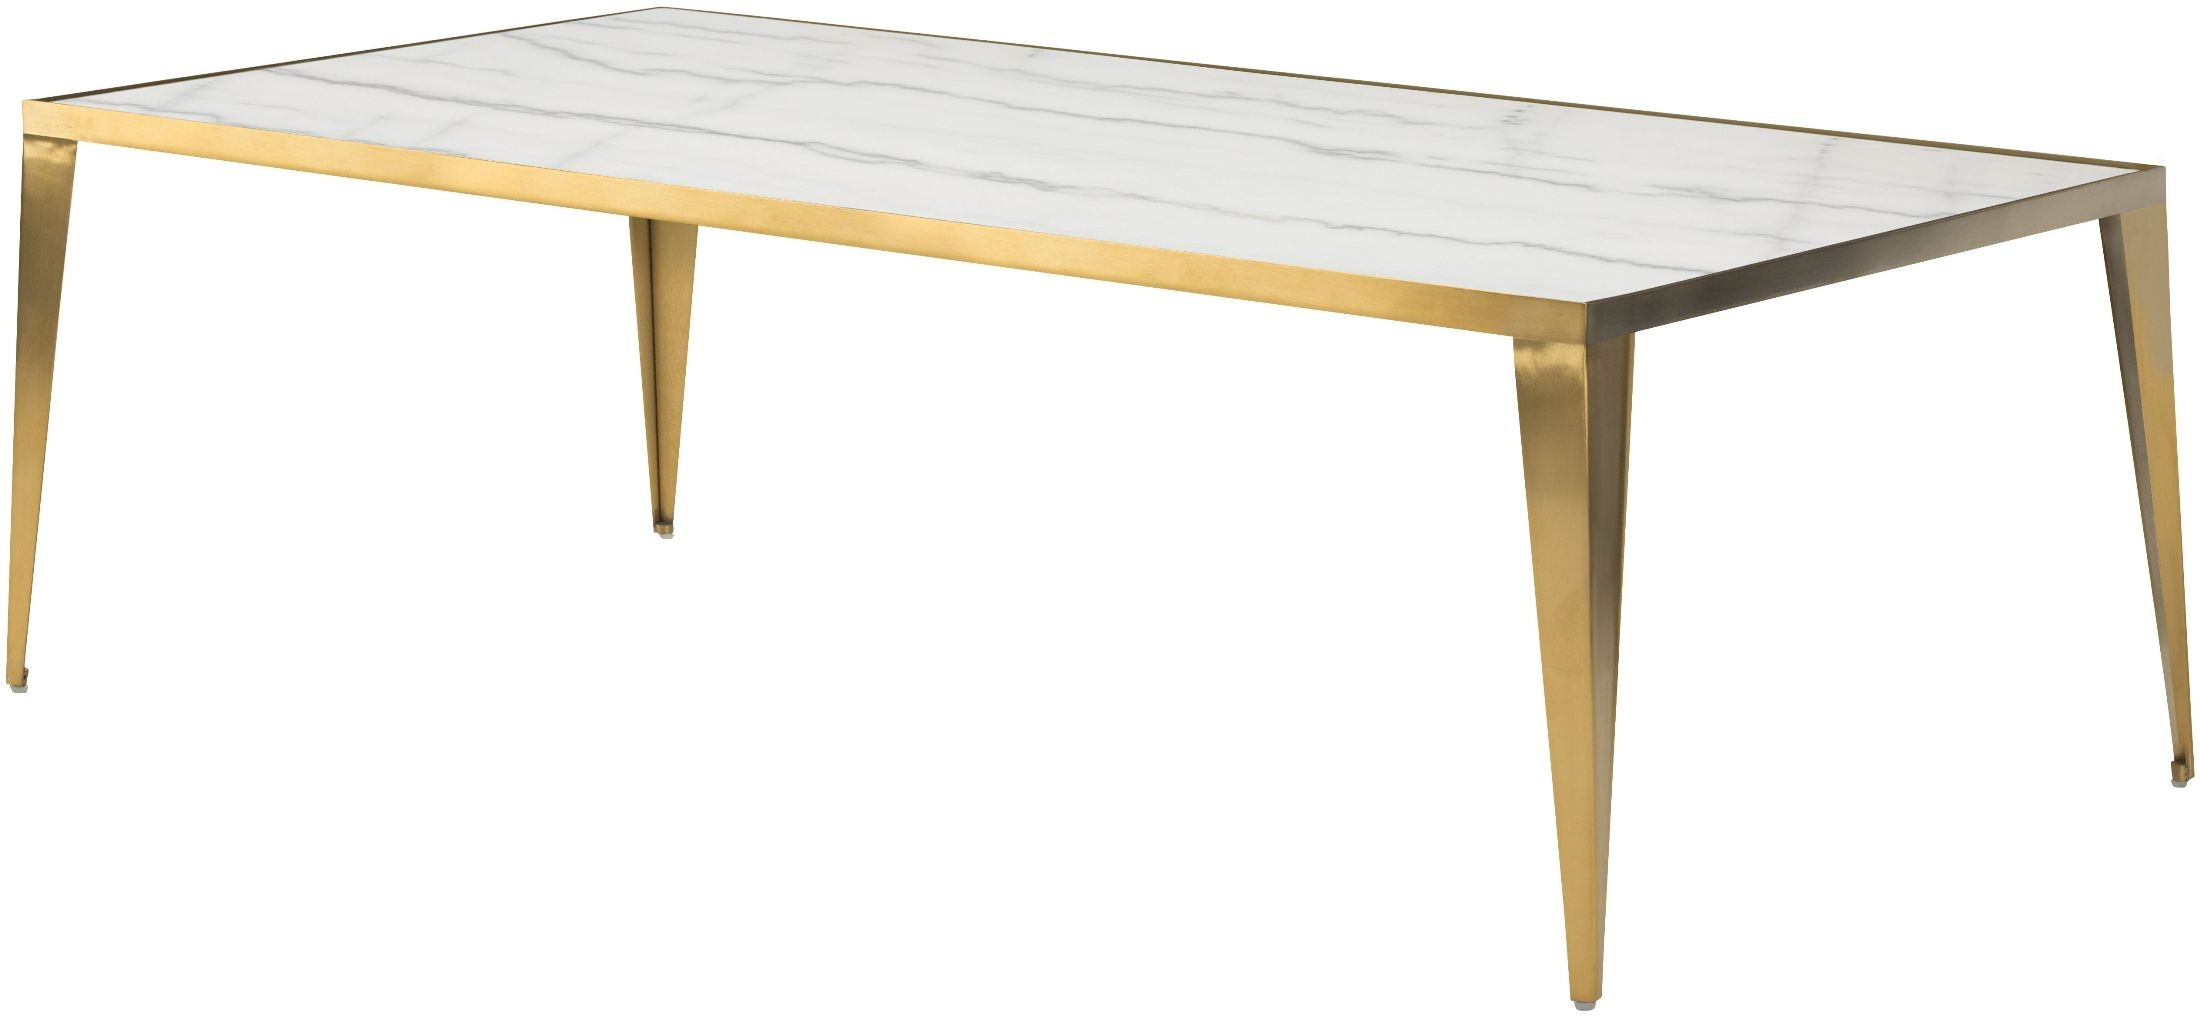 White Metal End Table Mink White Stone Coffee Table Hgna138 Nuevo